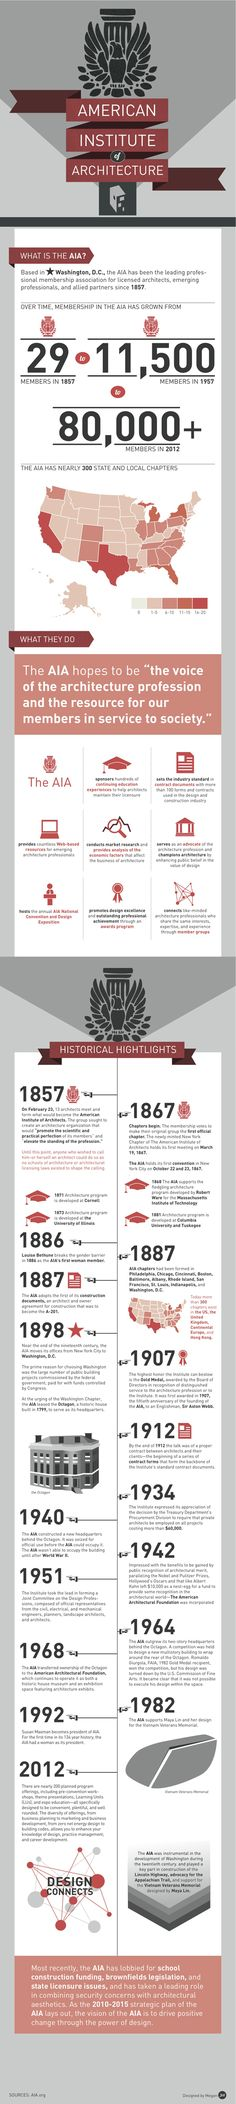 Infographic: The AIA History